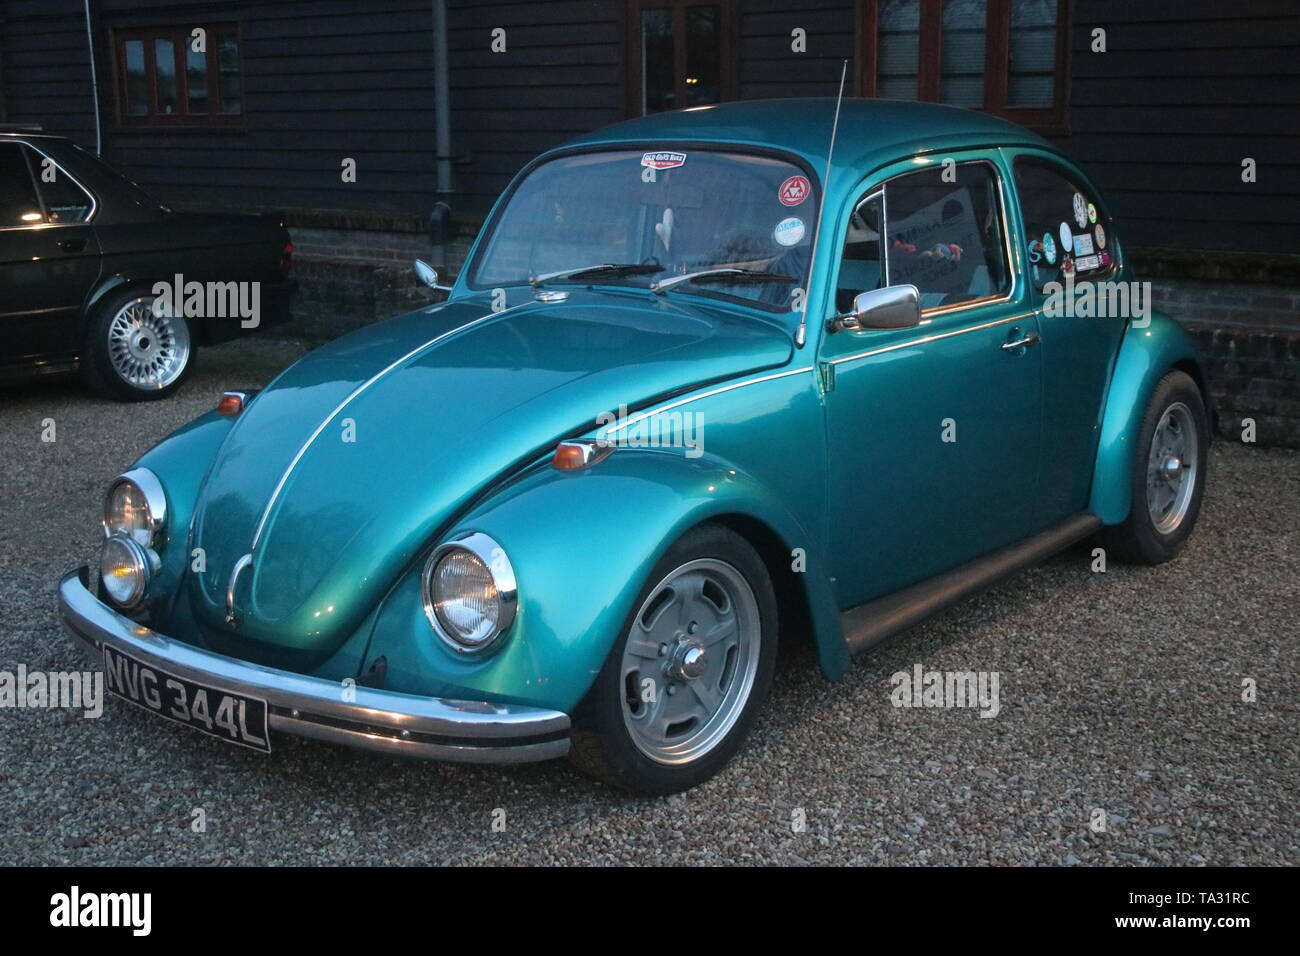 A DUSK PHOTO OF A CLASSIC VW VOLKSWAGEN BEETLE CAR AT A VINTAGE VEHICLE MEET - Stock Image